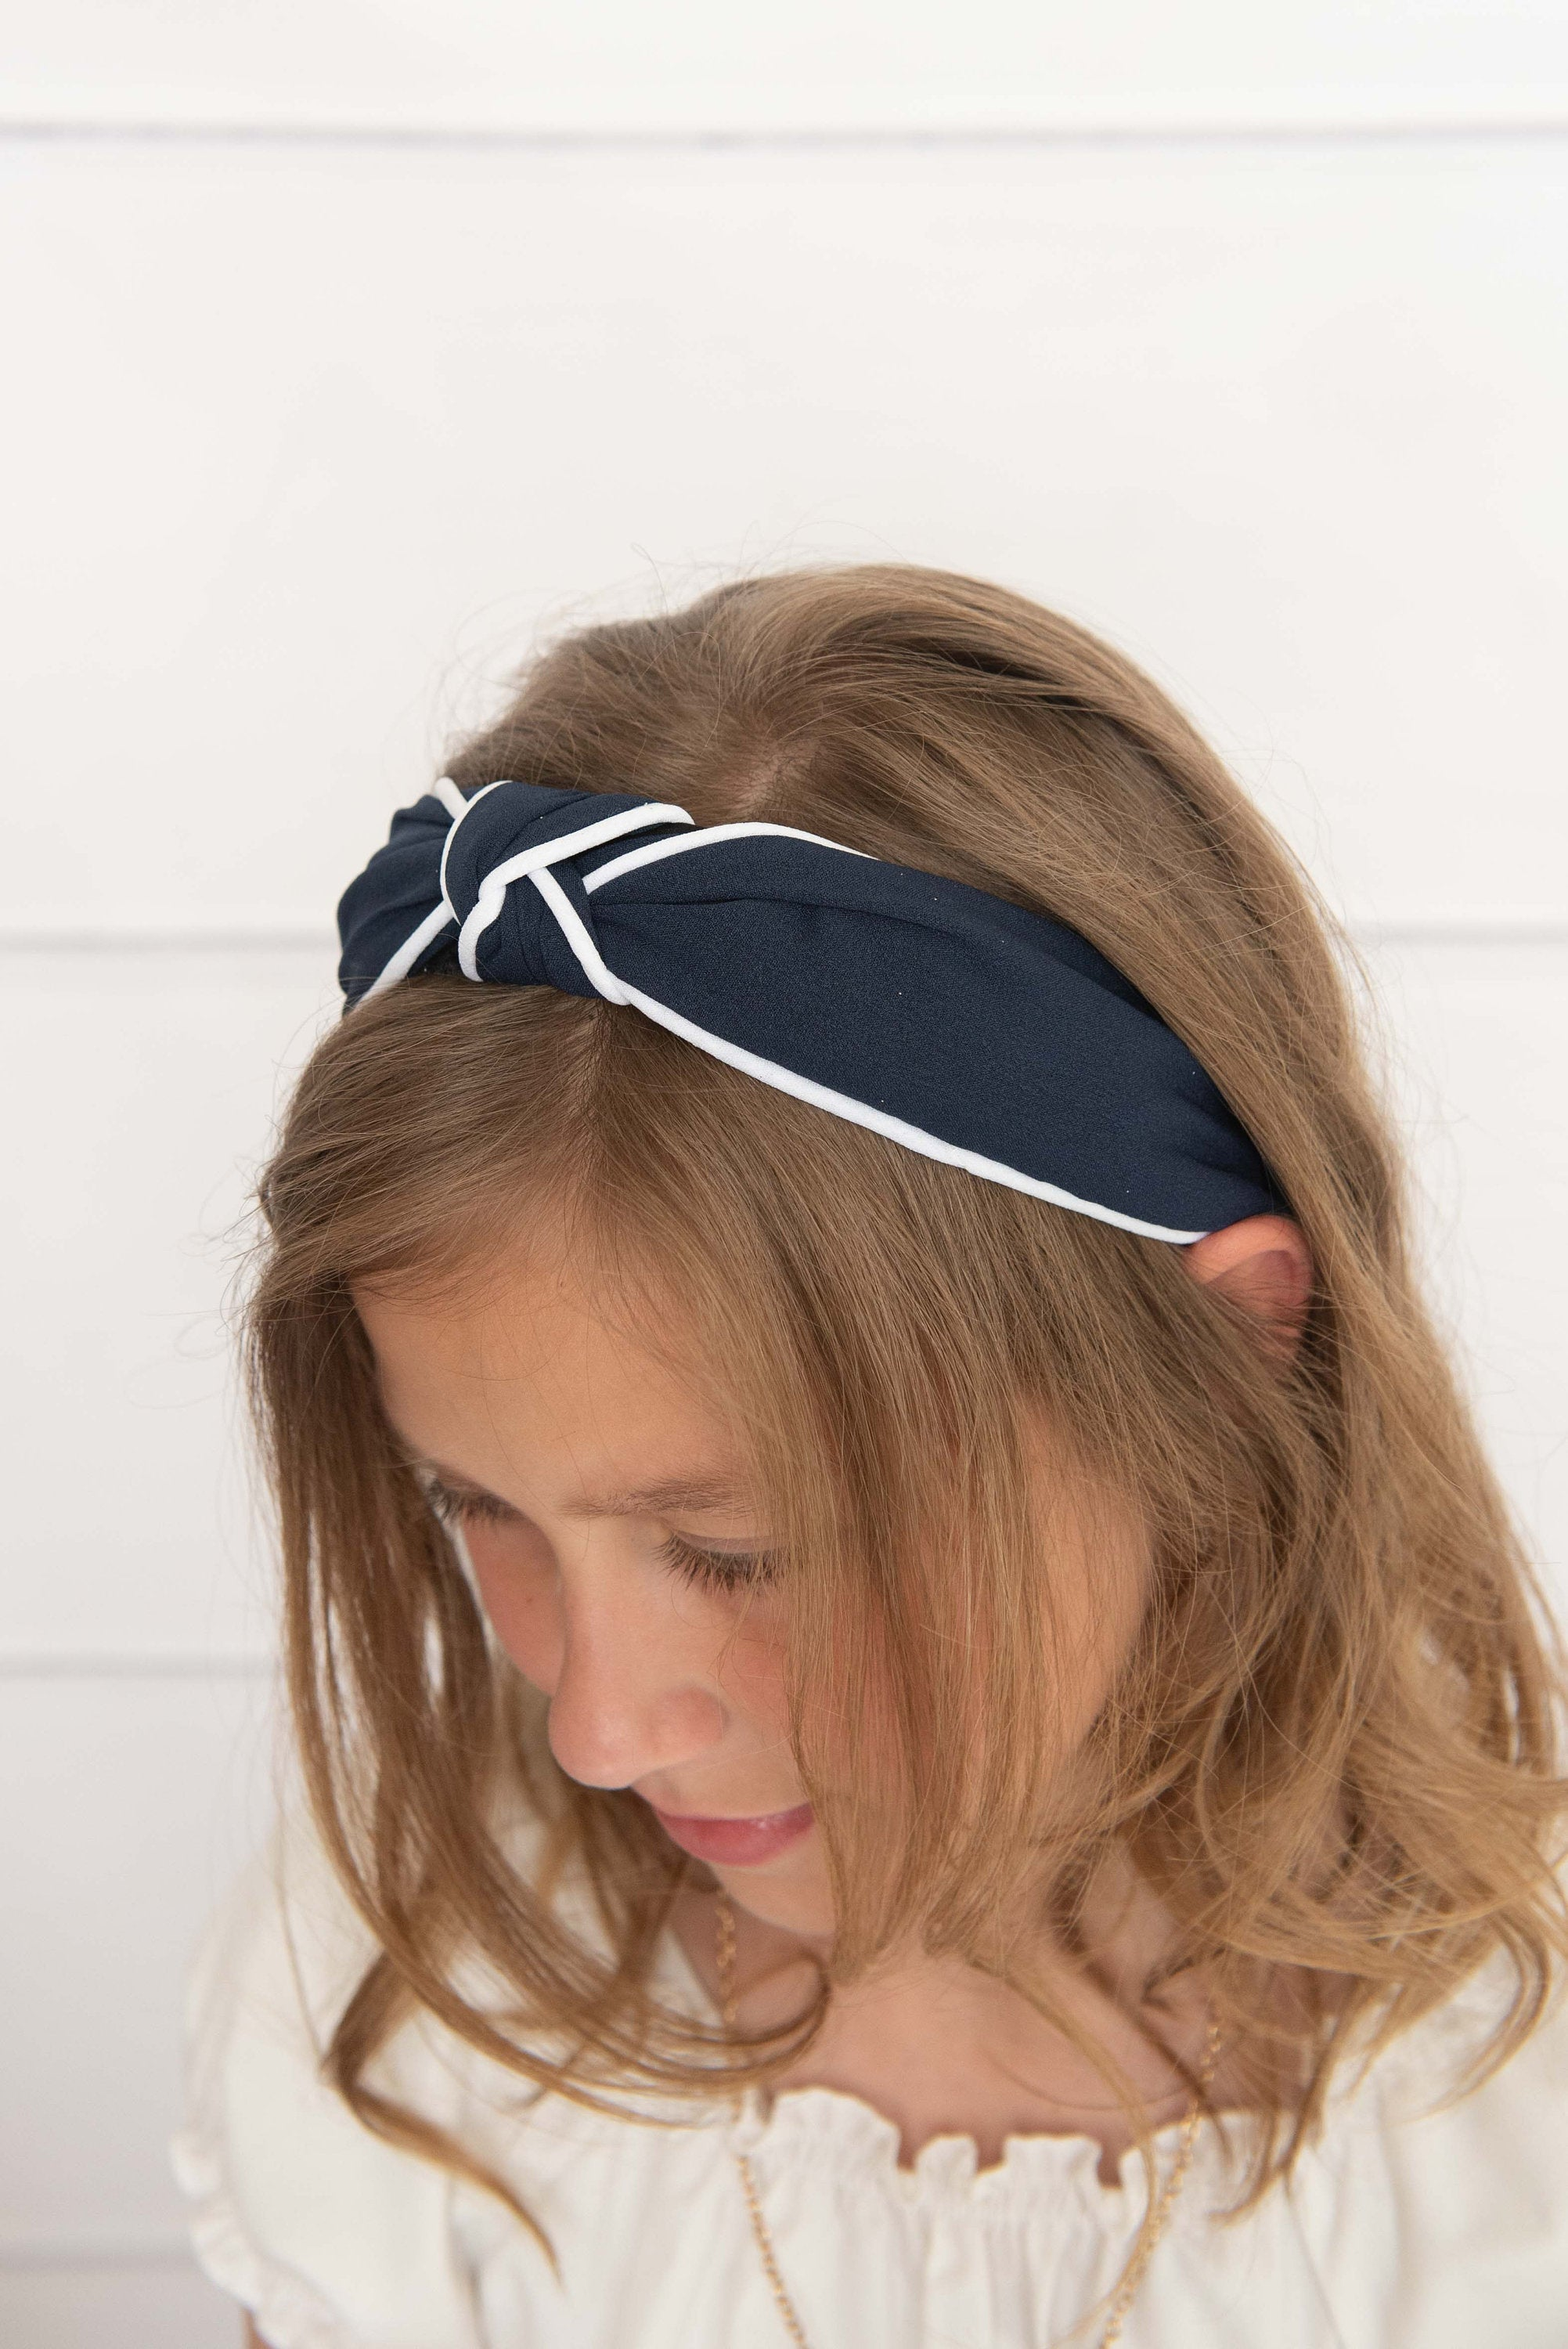 navy knotted hard headband for girl, womens hard headband for women, womens knot headband girl knotted headband for women's headband, turban